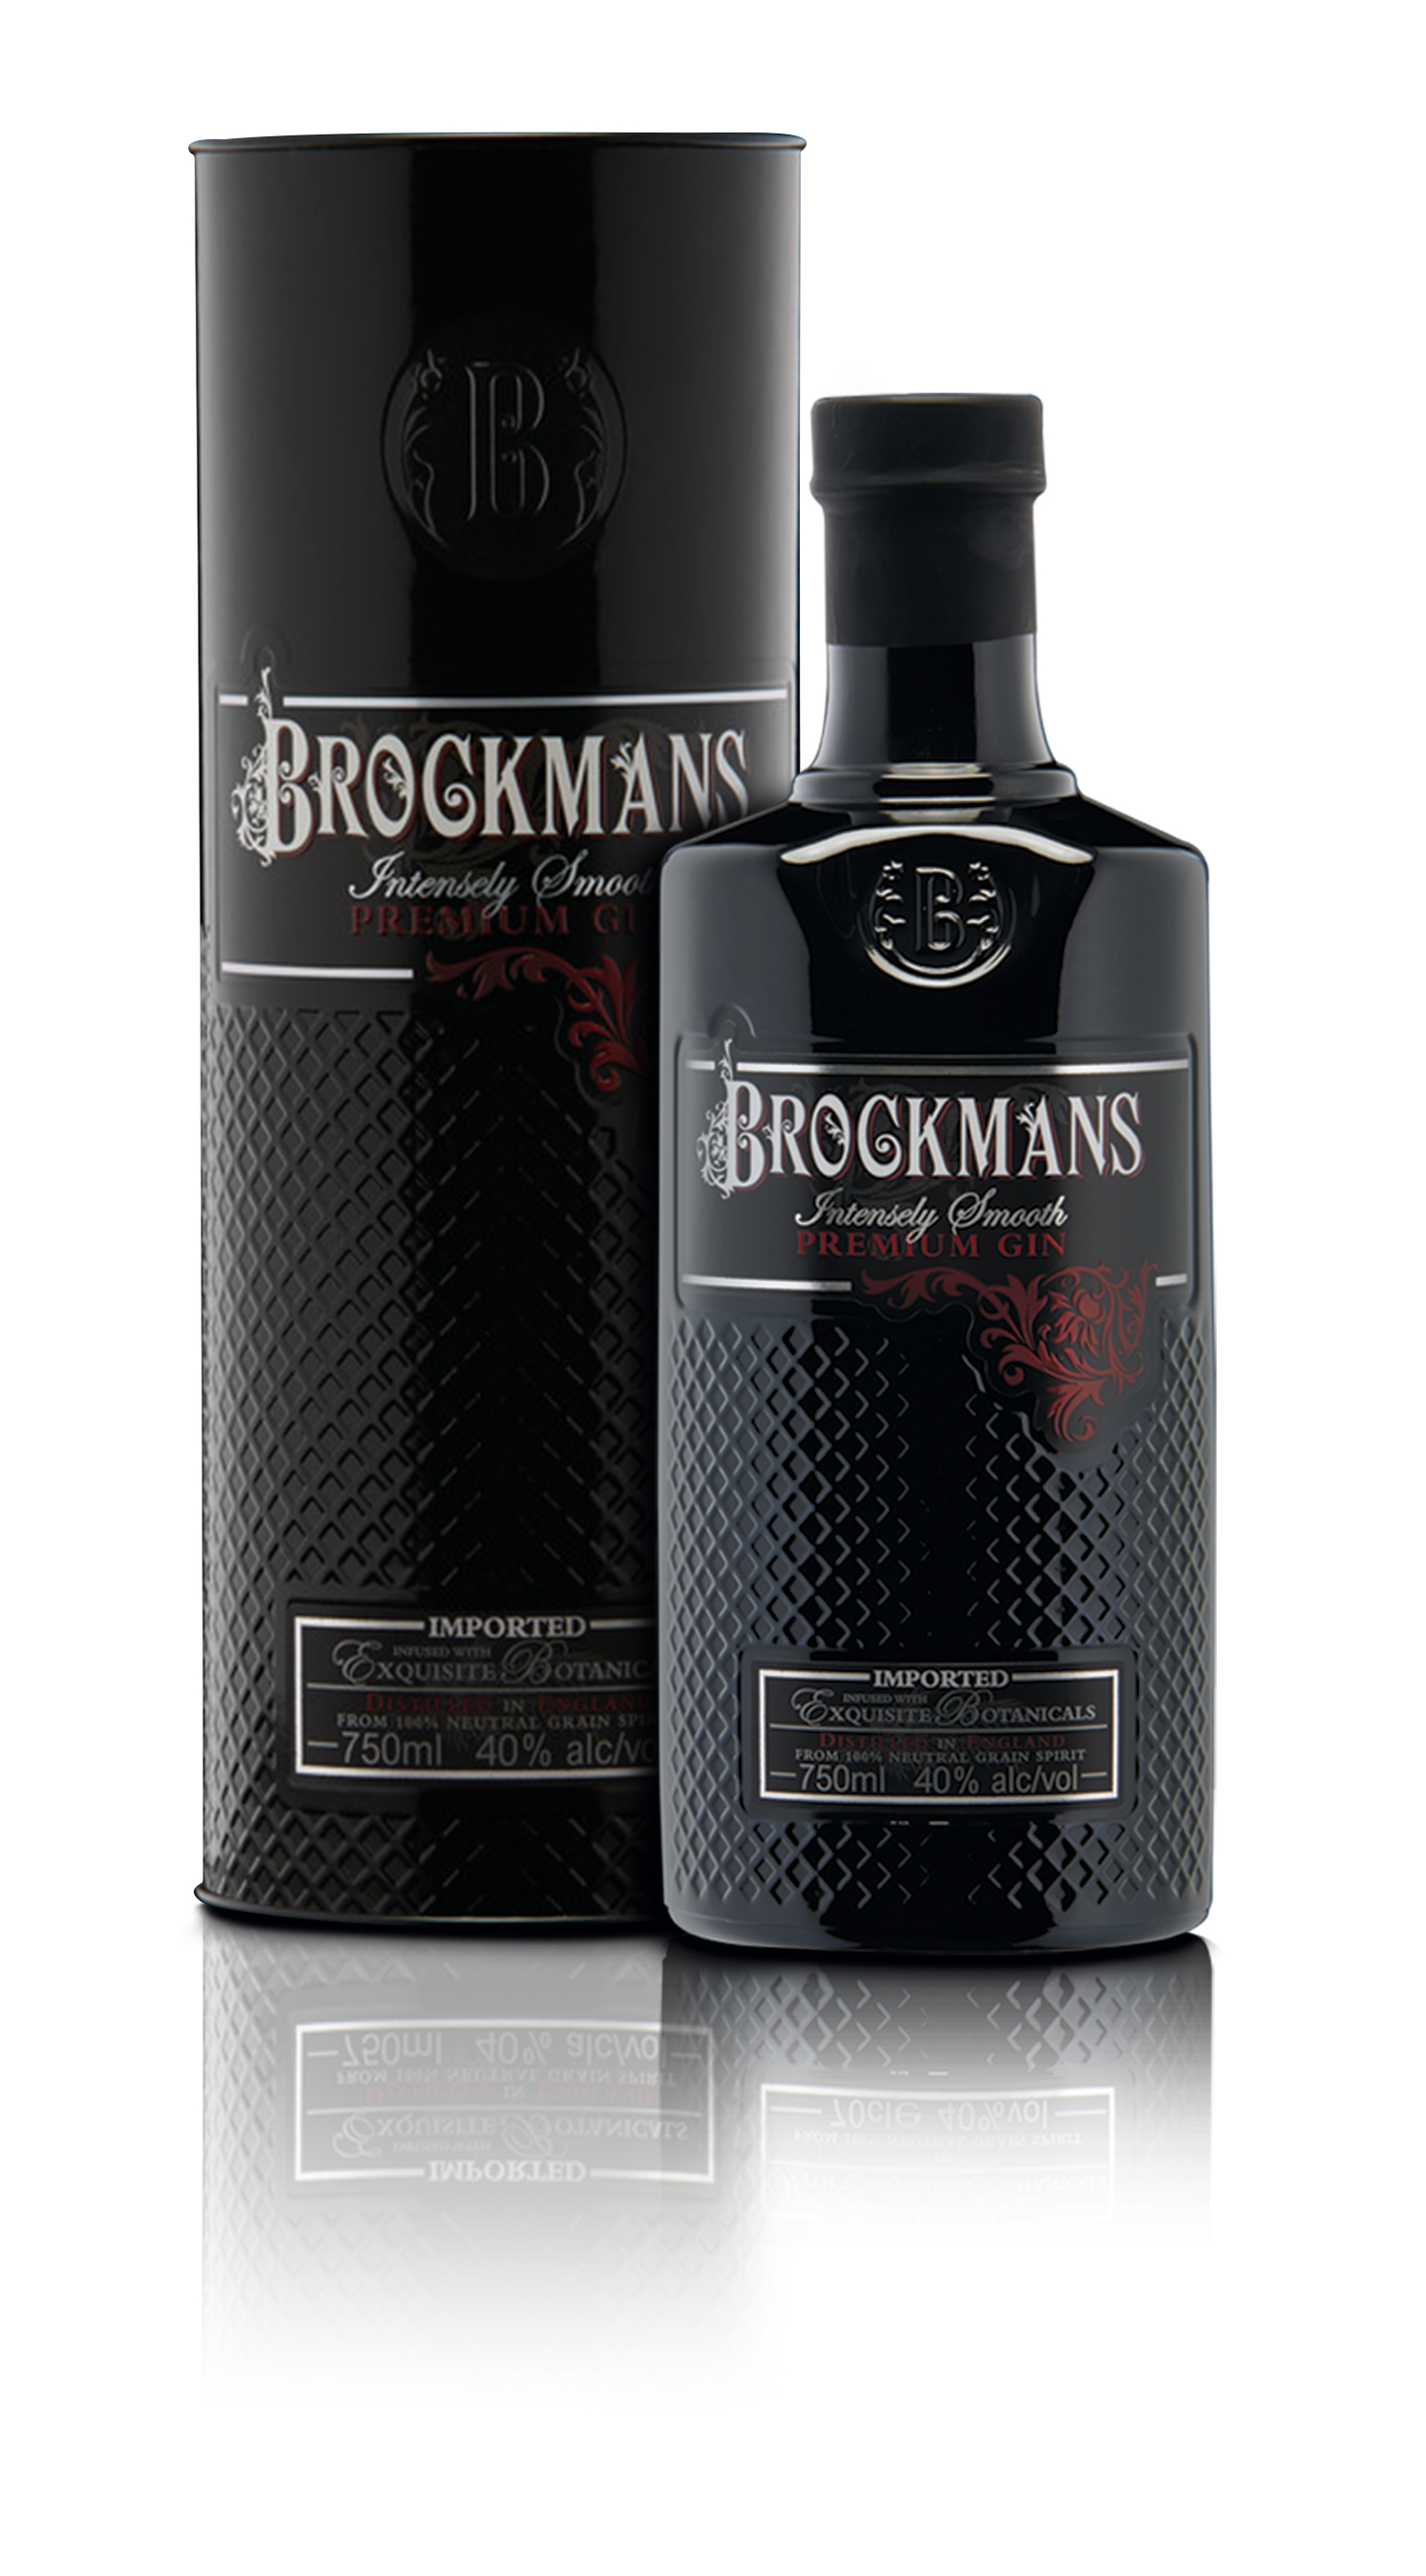 Brockmans Gin Announces Cocktail Contest for World Gin Day